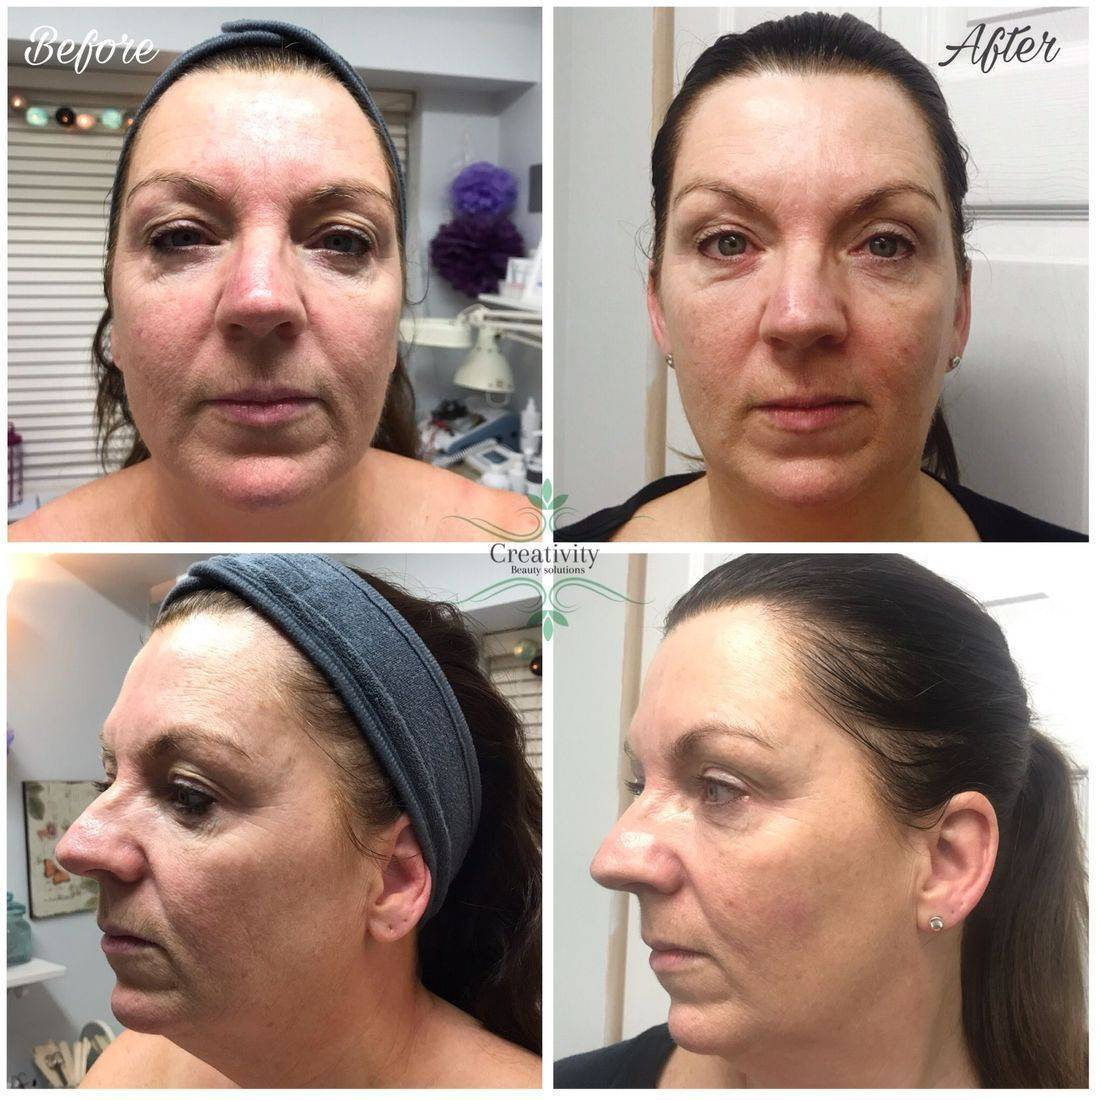 Microcurrent review, facial treatment, non-surgical face lift, caci, Creativity beauty  solutions